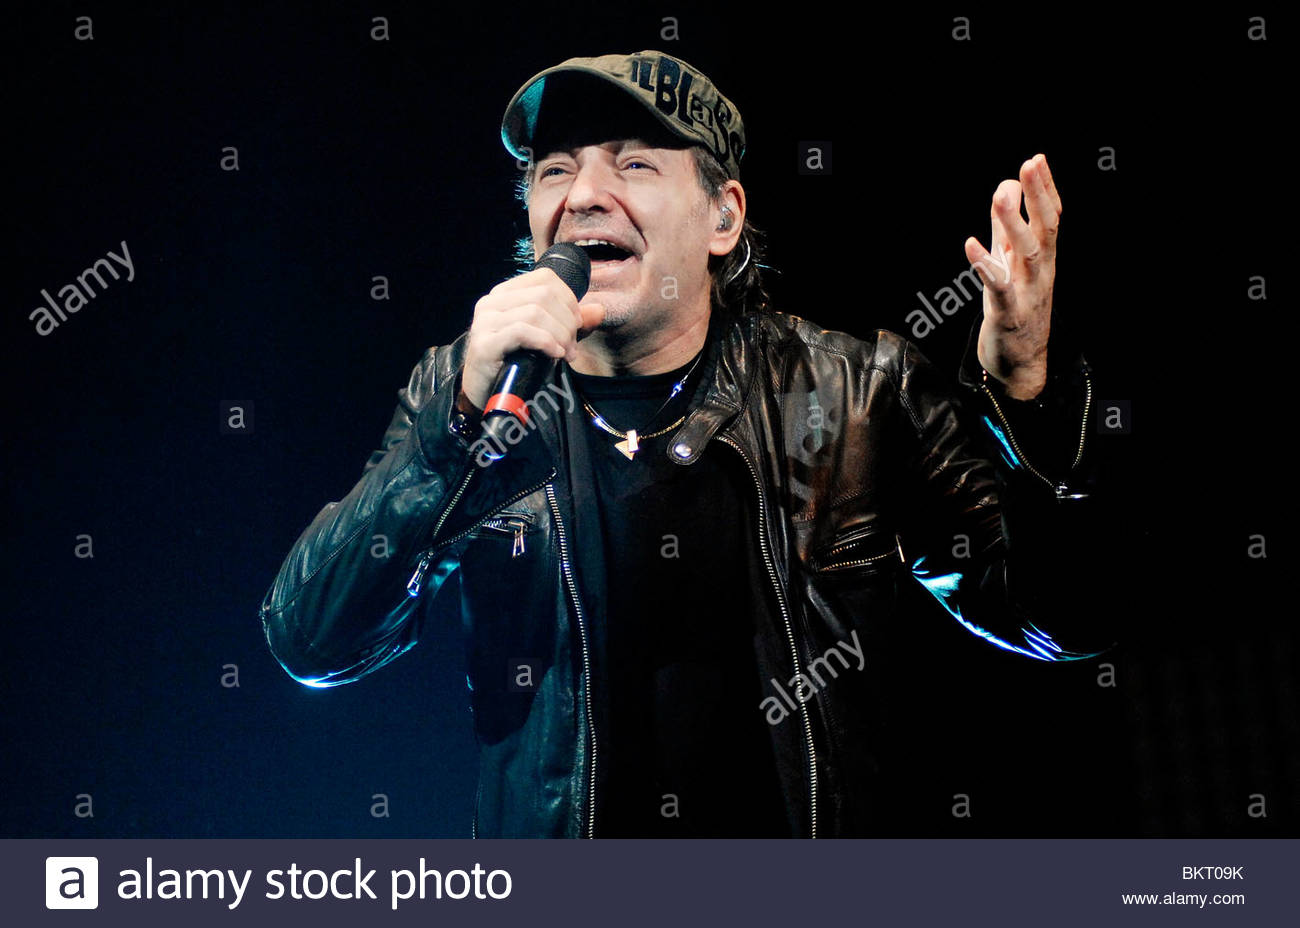 Vasco Rossi 2014 Album Vasco Rossi Stock Photos Vasco Rossi Stock Images Alamy